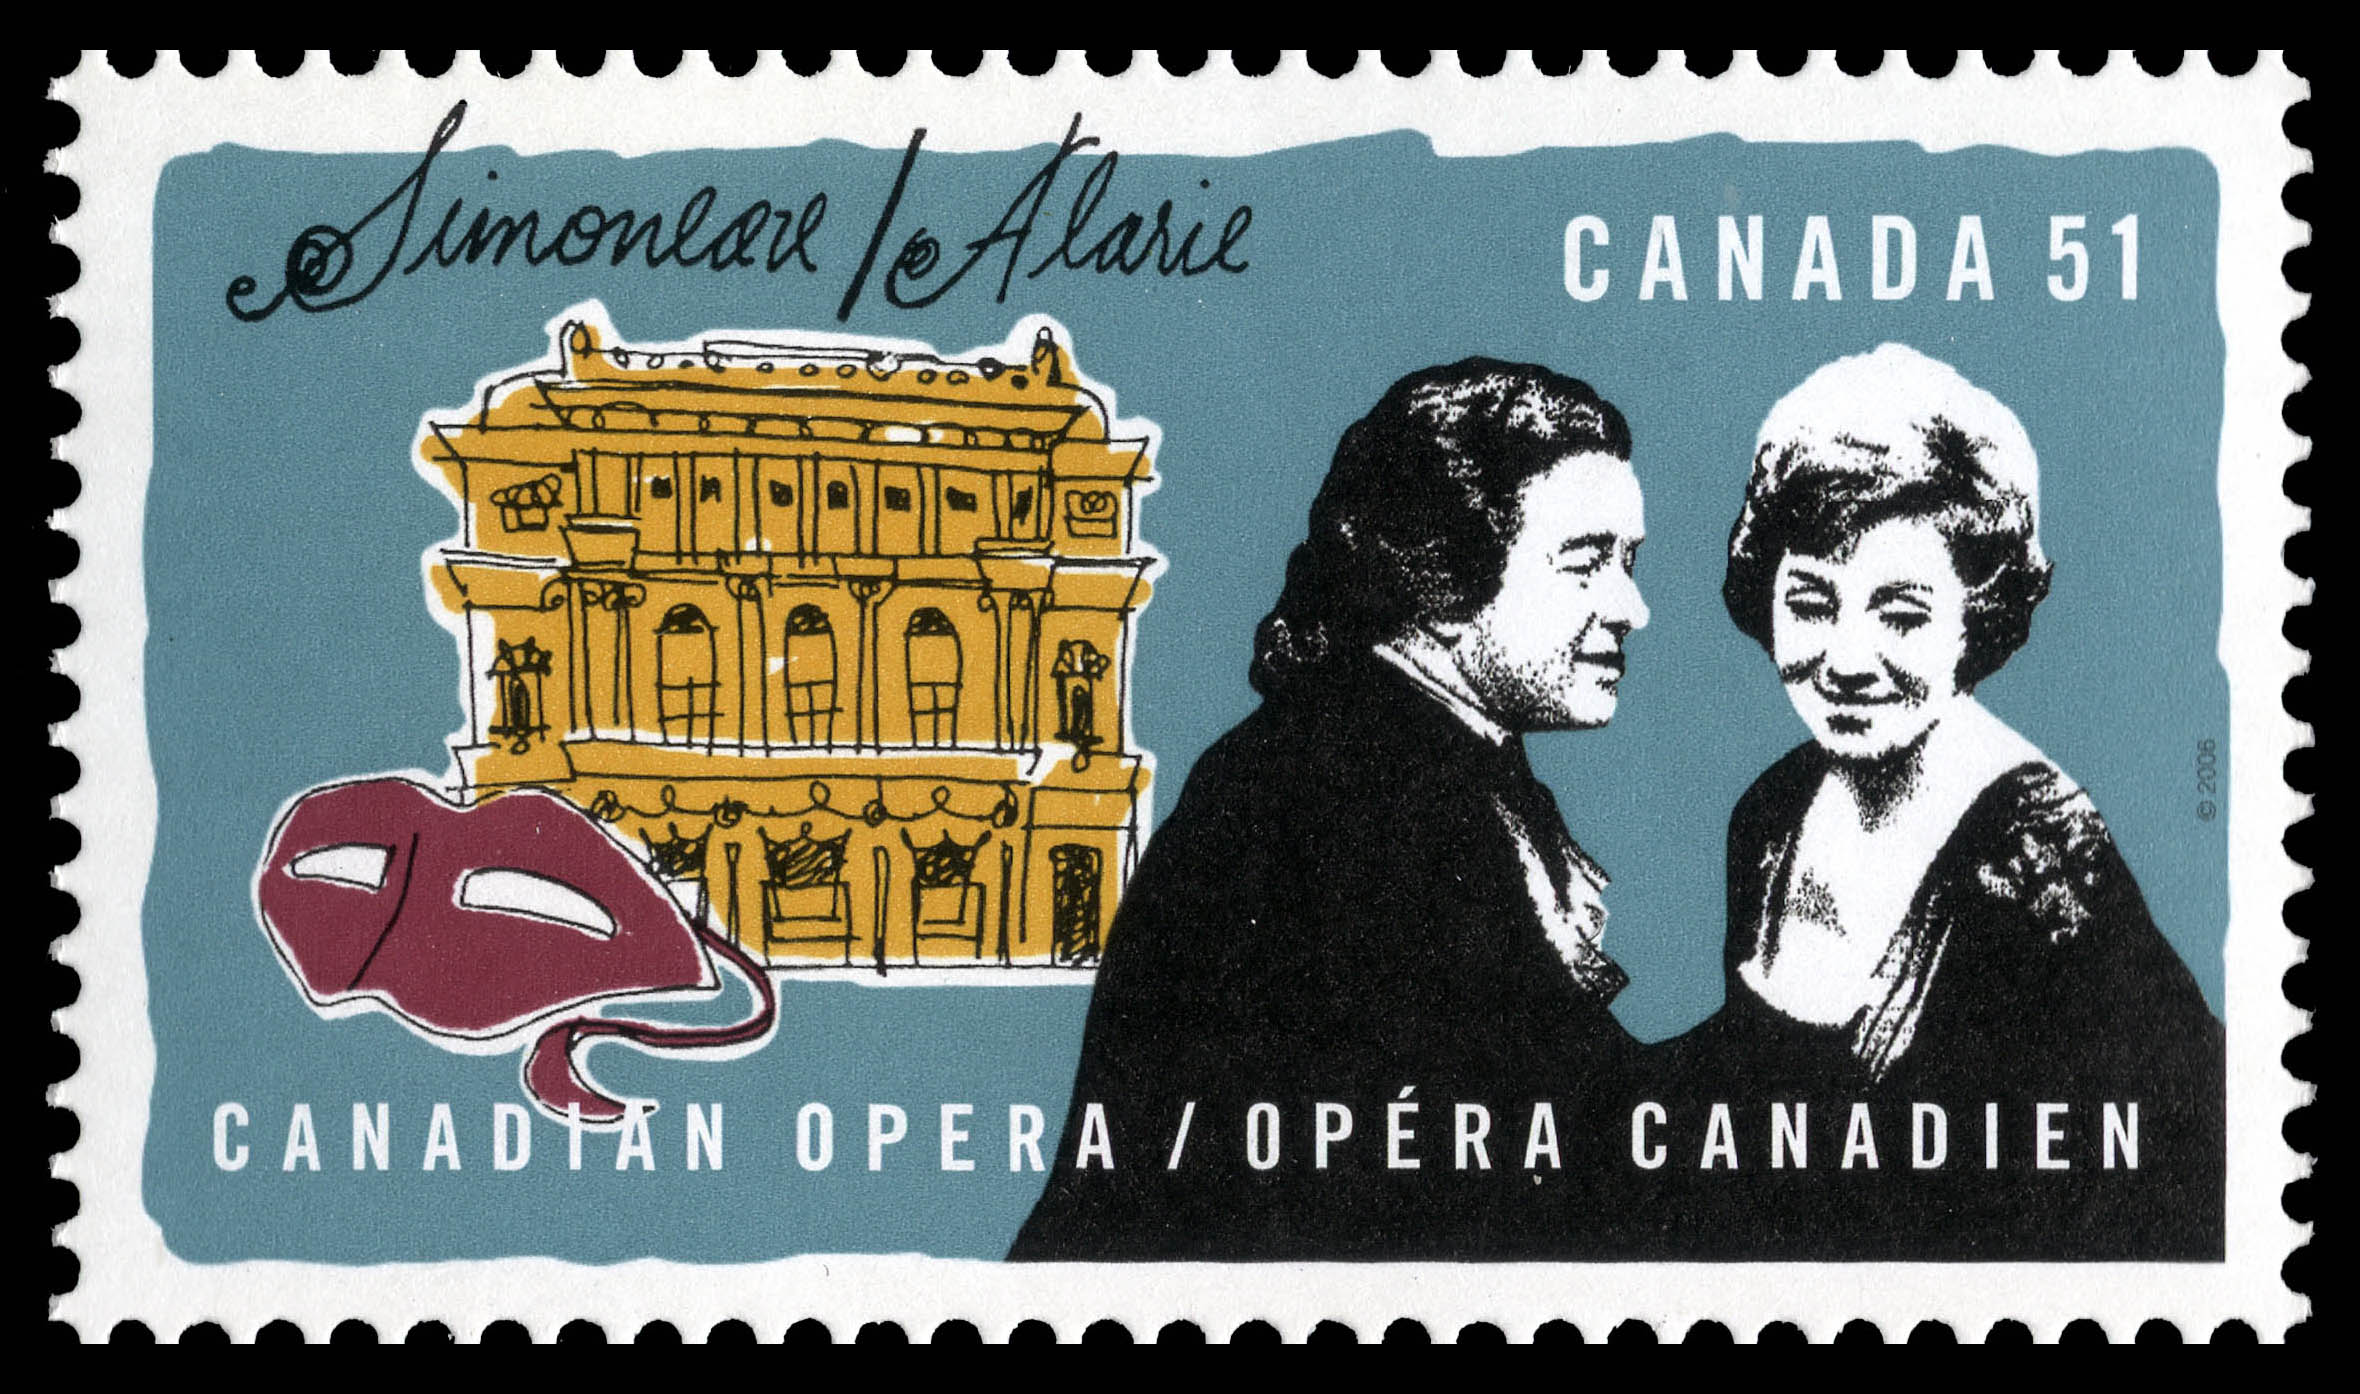 Simoneau and Alarie Canada Postage Stamp | Canadian opera